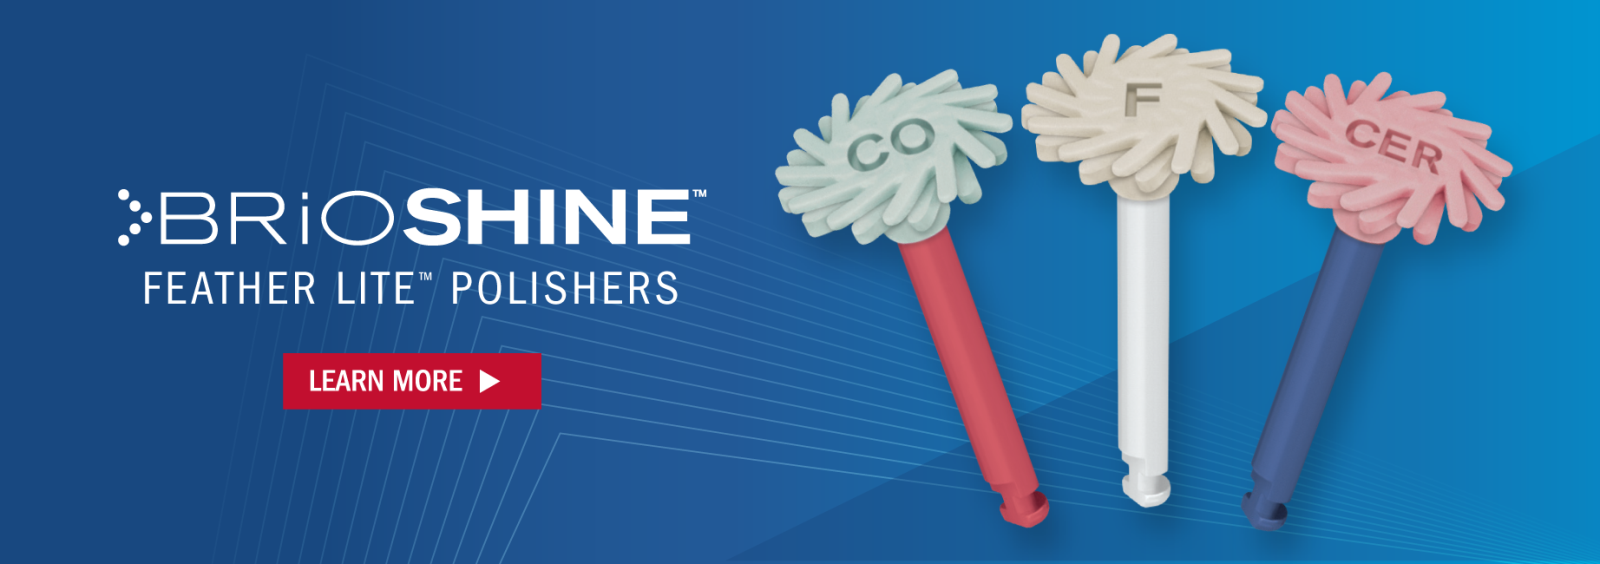 BrioShine Feather Lite Polishers. Learn More.